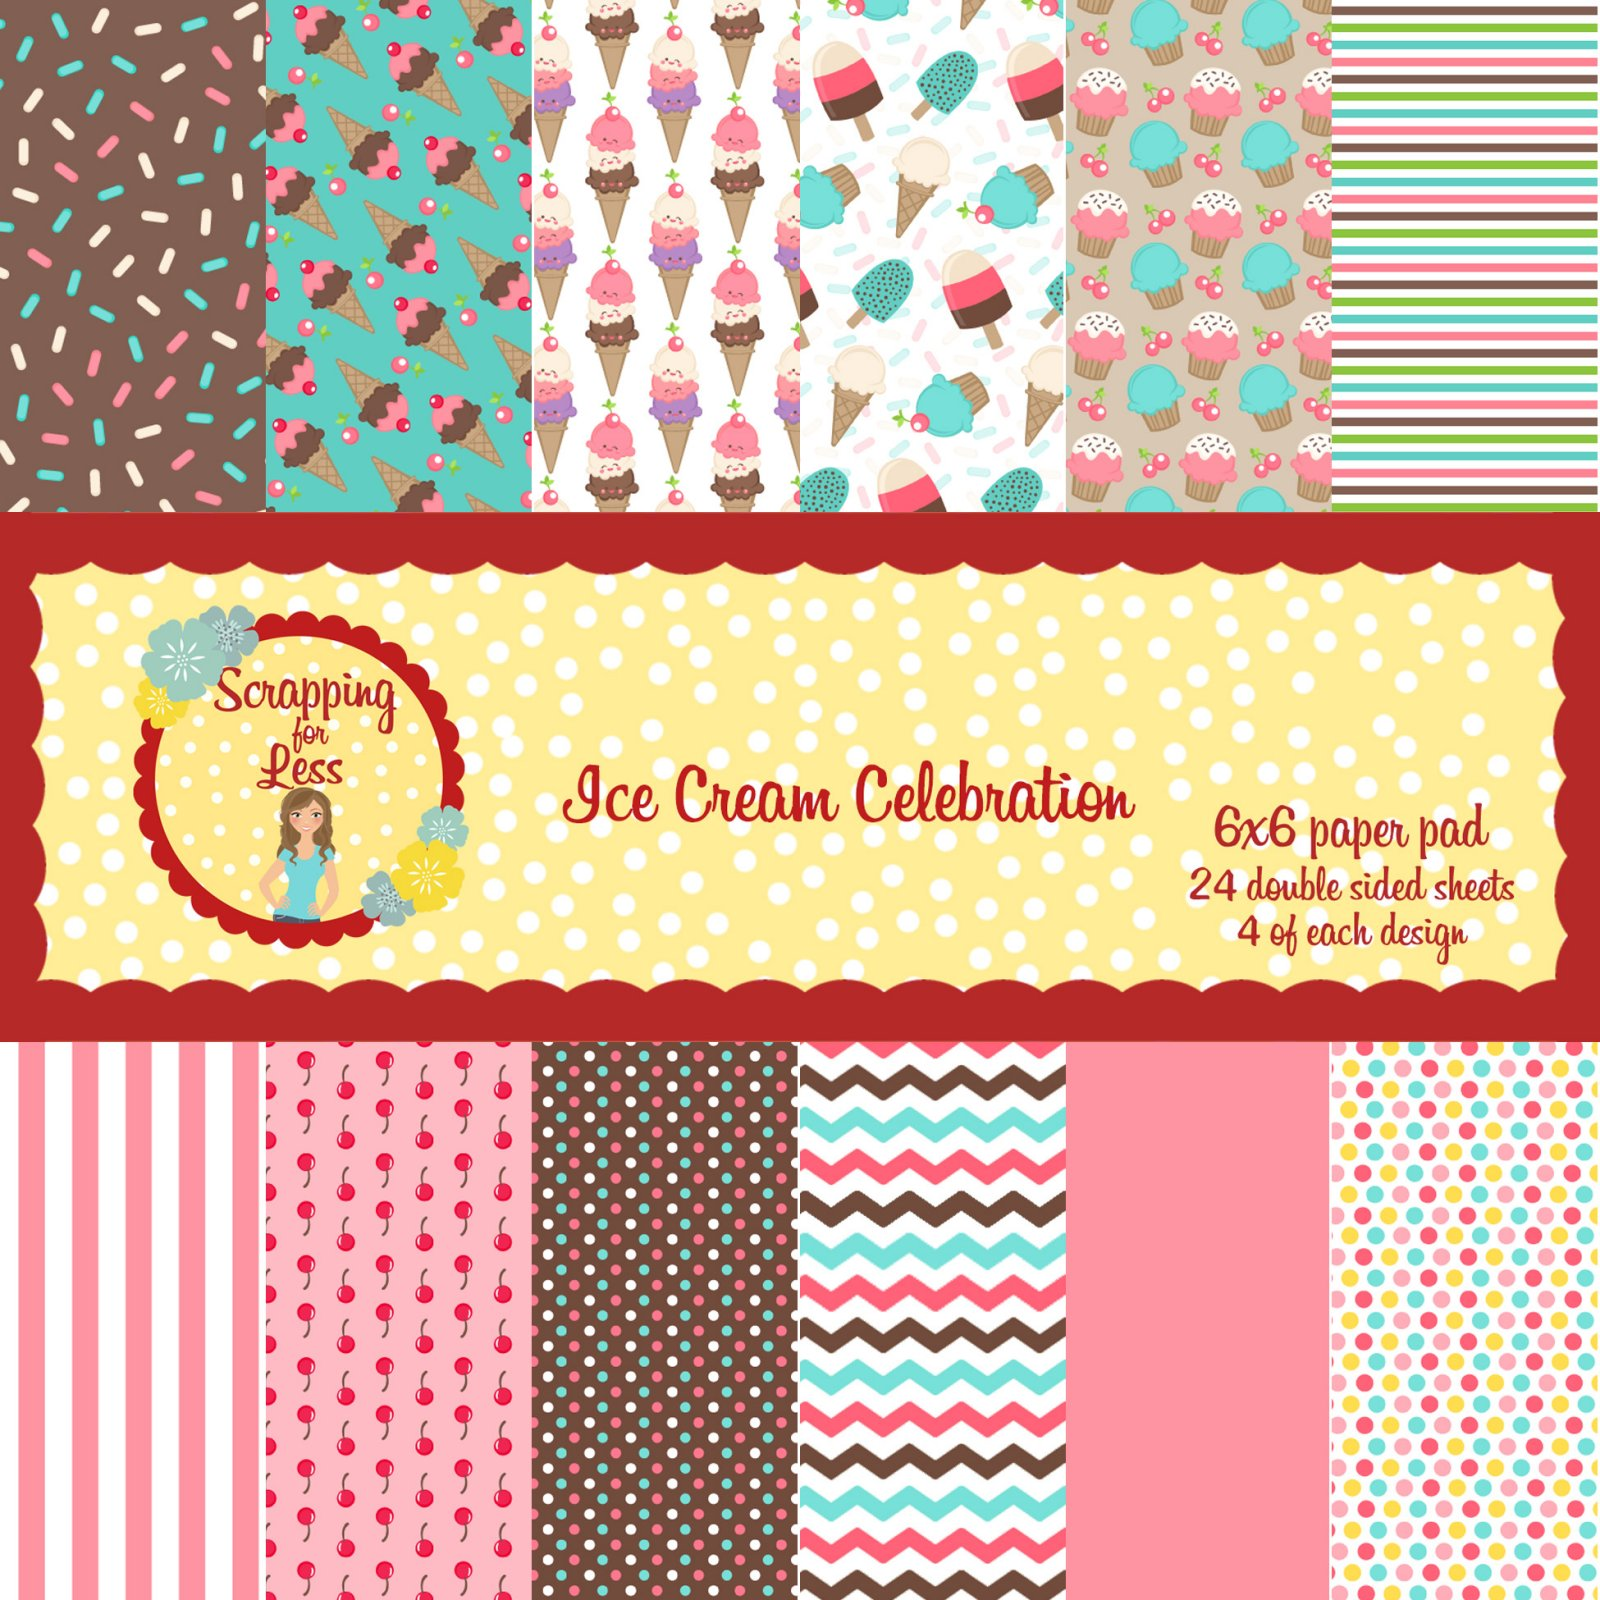 Scrapping for Less Ice Cream Celebration 6x6 Paper Pad